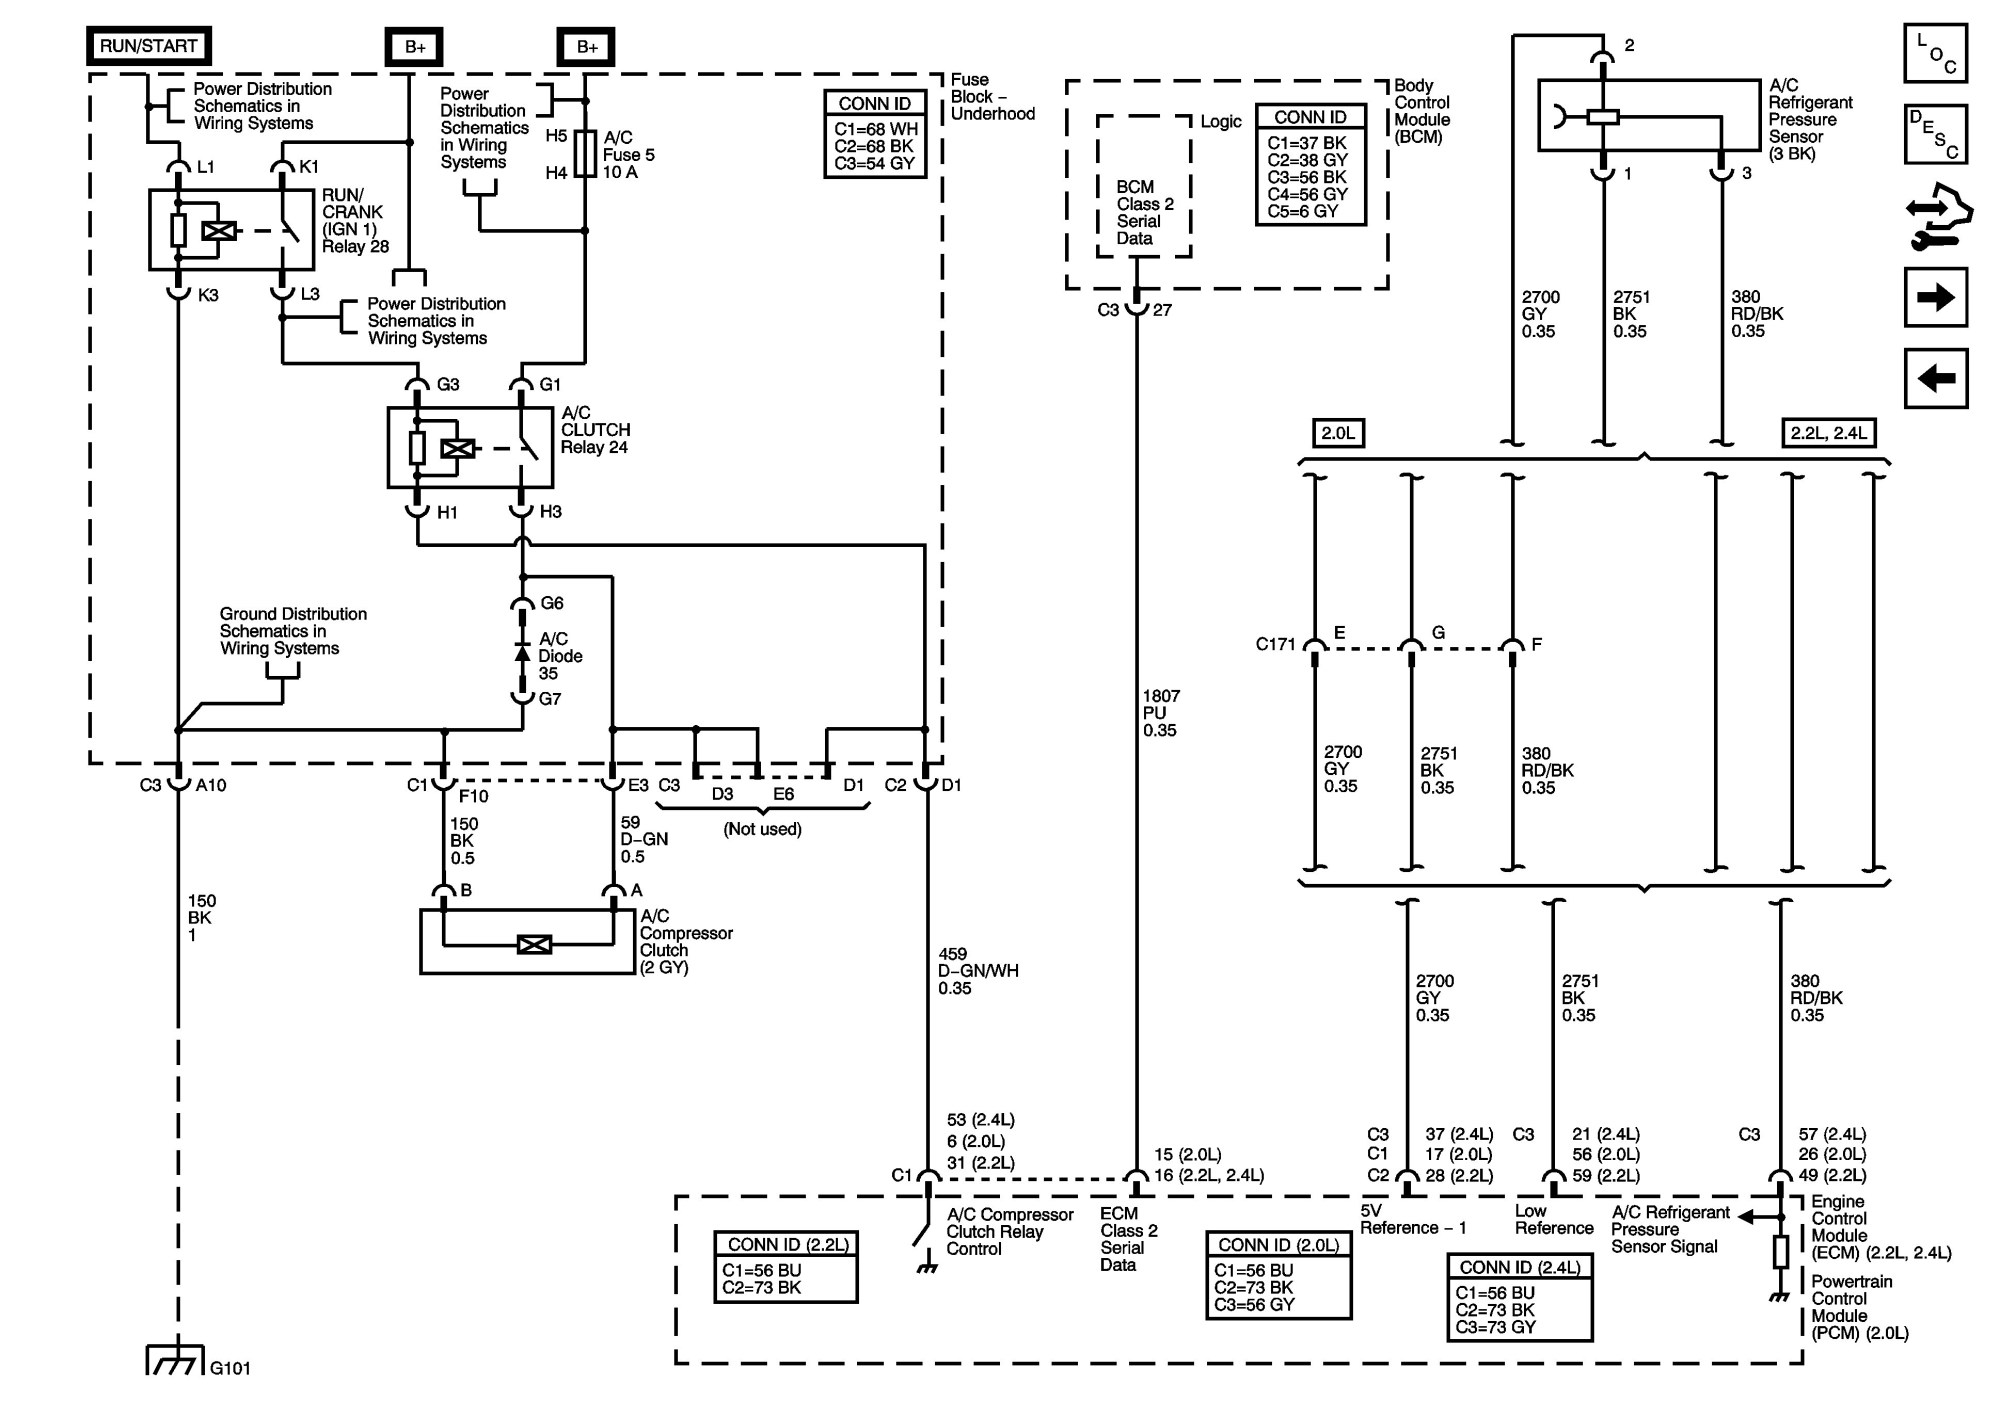 hight resolution of 2004 saturn ion fuse diagram wiring diagram 2004 saturn vue stereo wiring diagram 2004 saturn ion